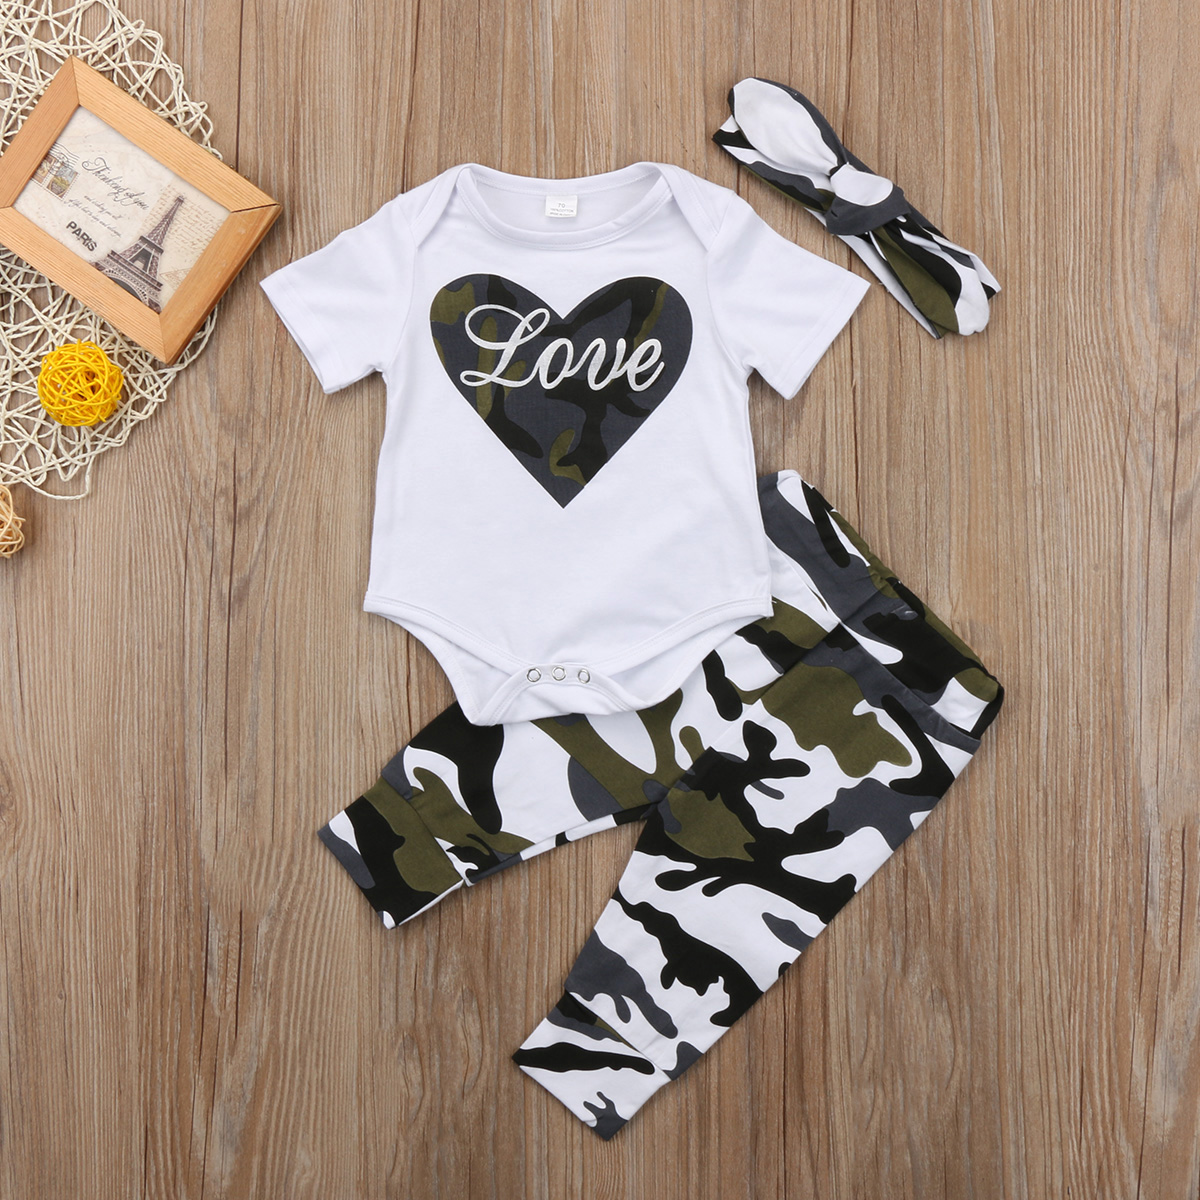 Pudcoco Hot Sale Cute Newborn Toddler Baby Girls 0-18M Short Sleeve Camouflage Bodysuits+Pants+Headband Outfits Sets 3PCS